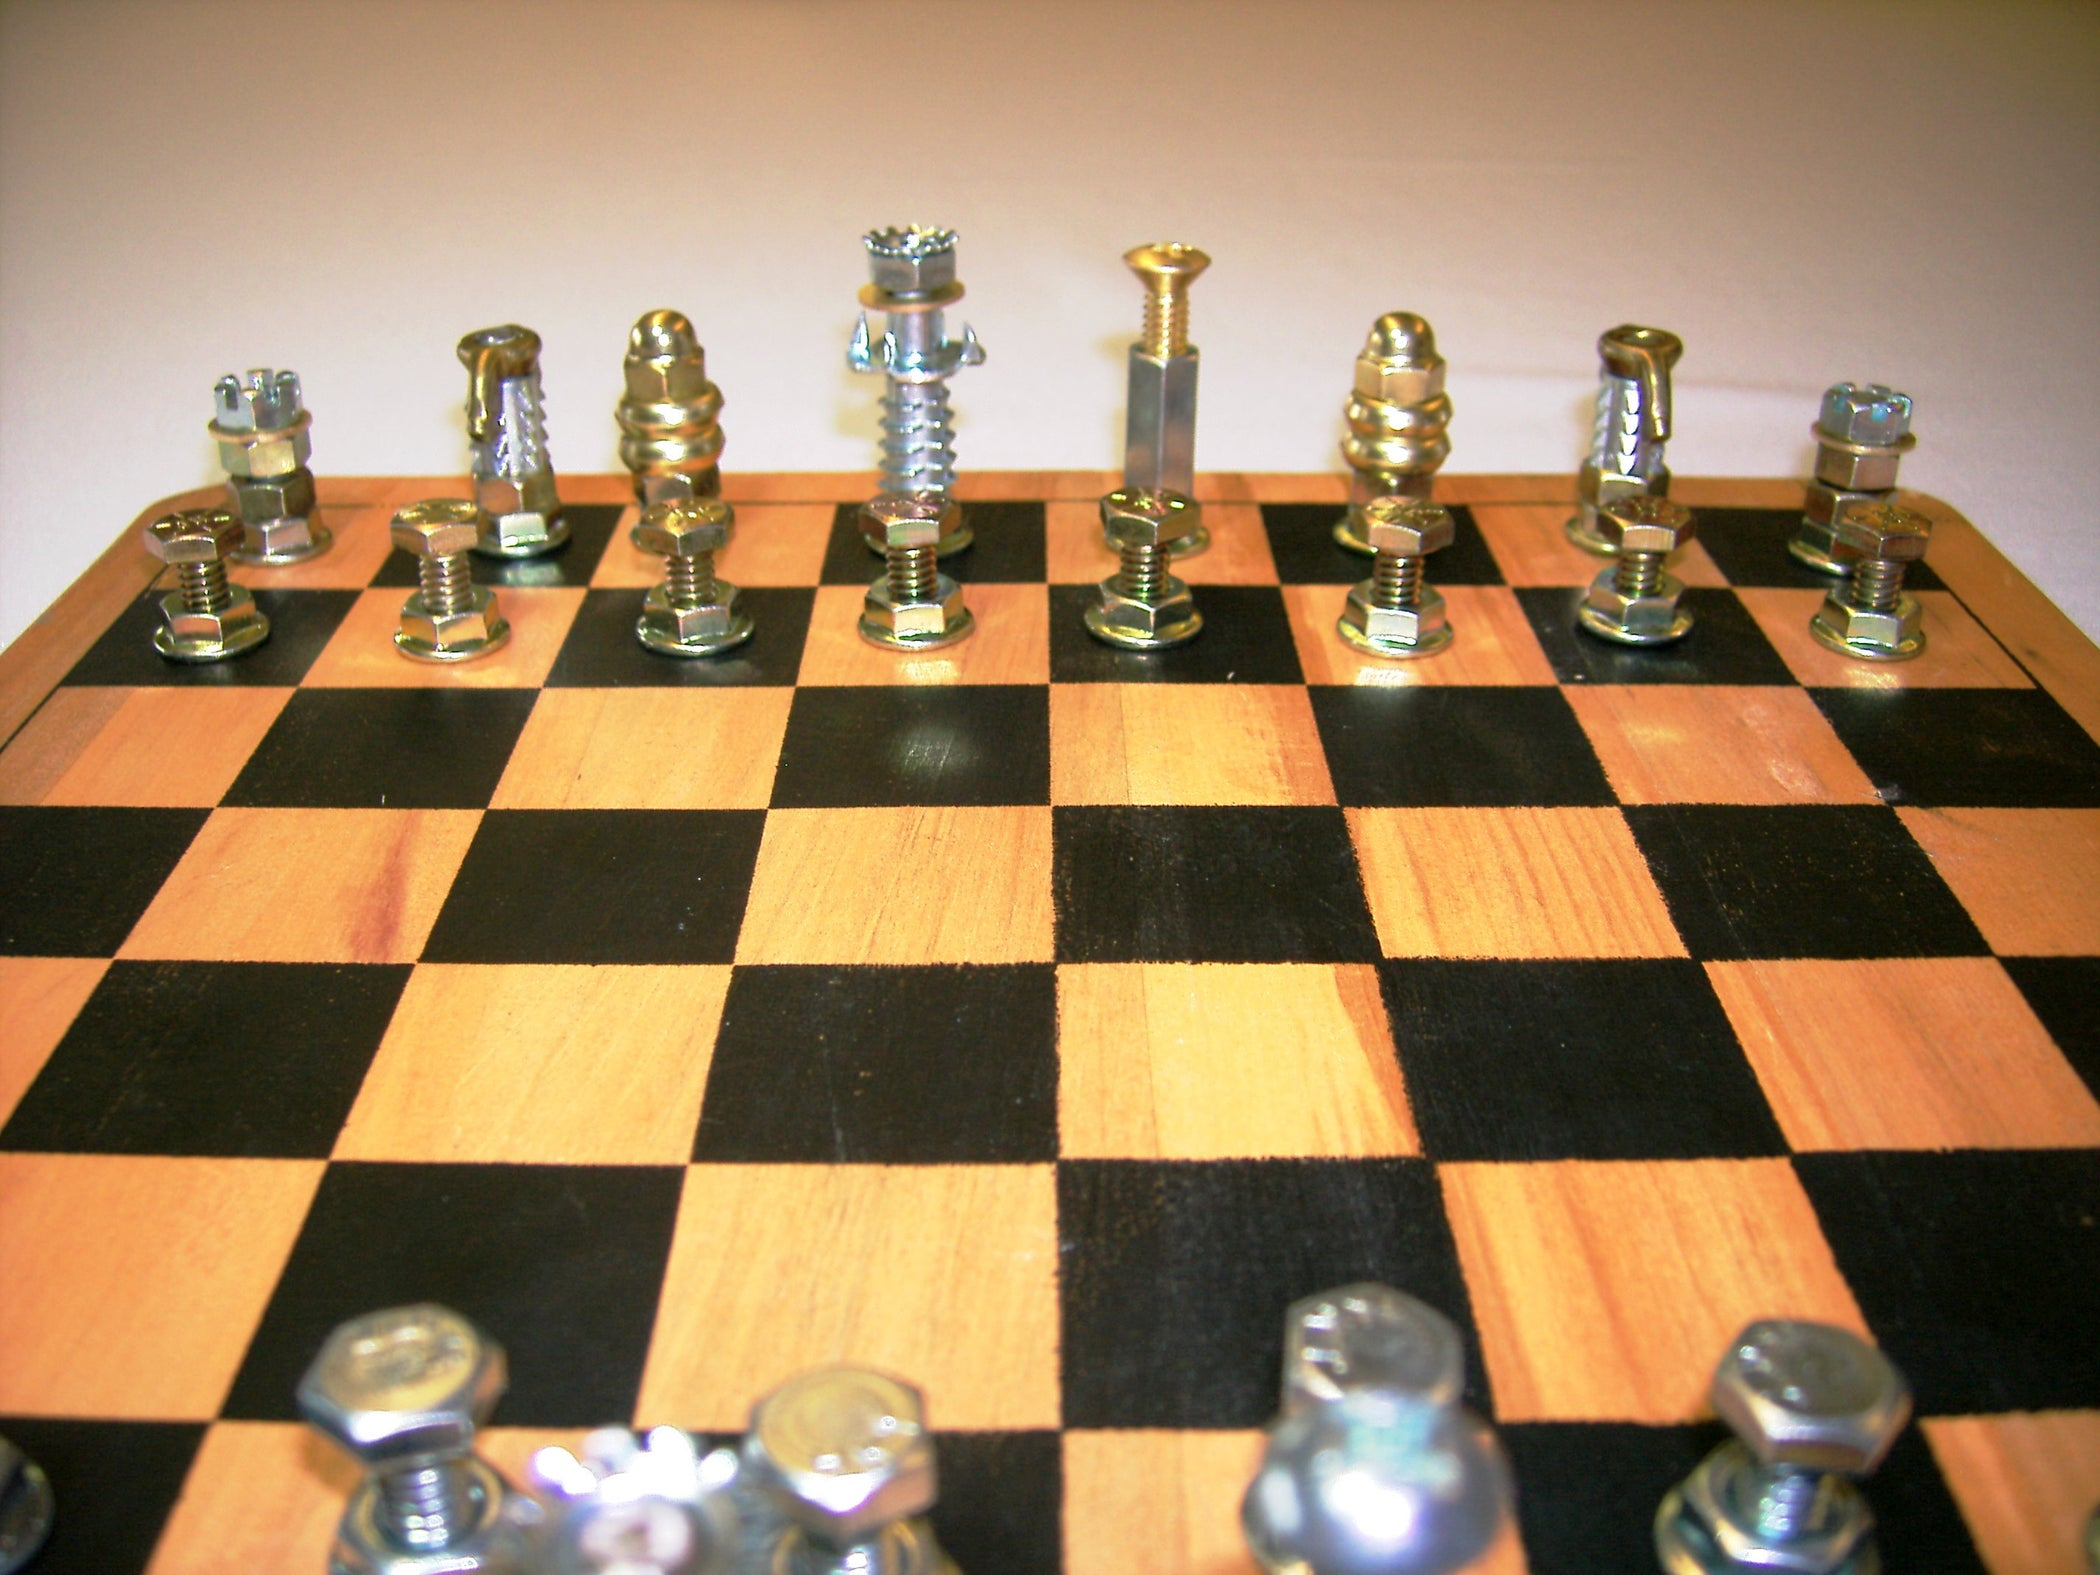 058a1401c30d0 Hardware Chess Set: 8 Steps (with Pictures)